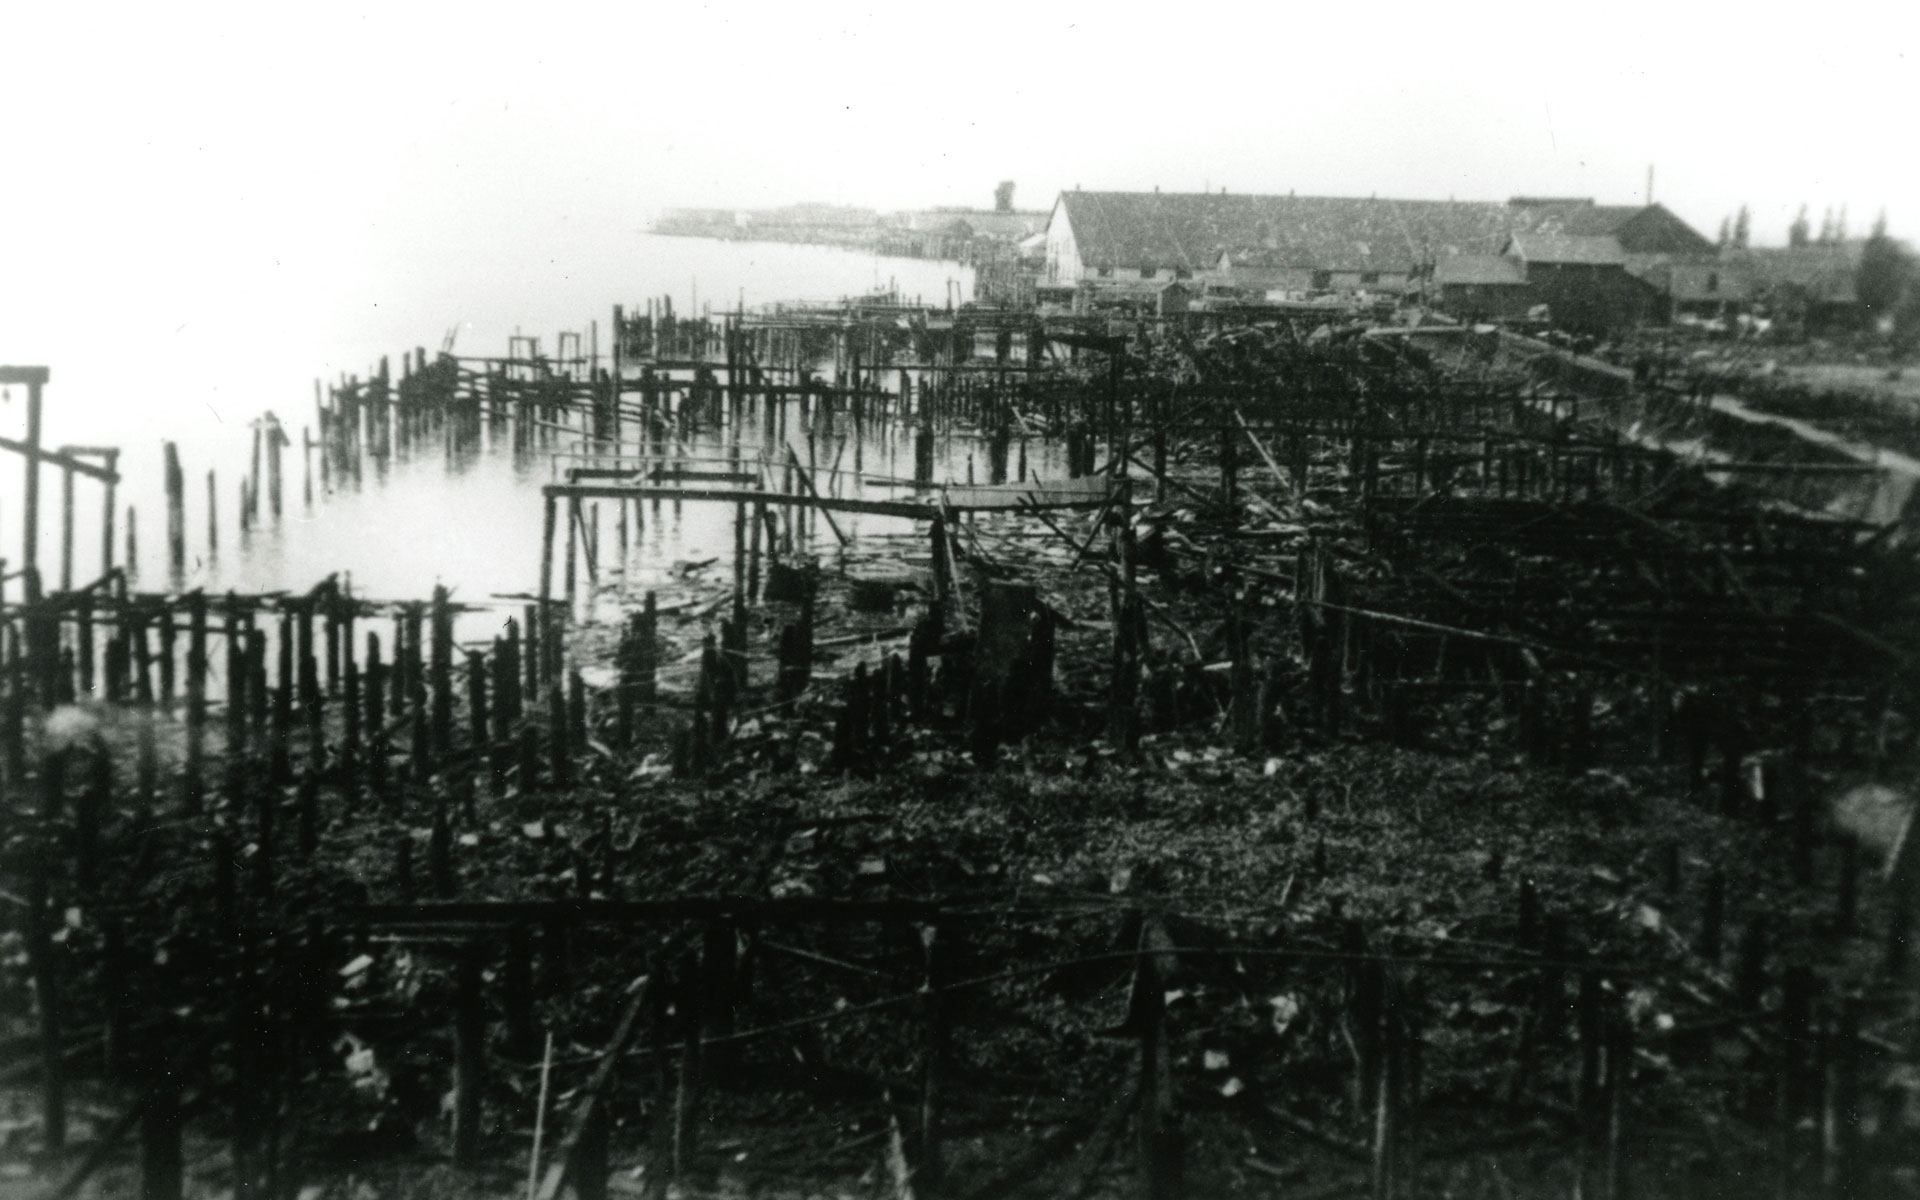 Expanse of burnt pilings stretch along the waterfront with cannery buildings in the background.